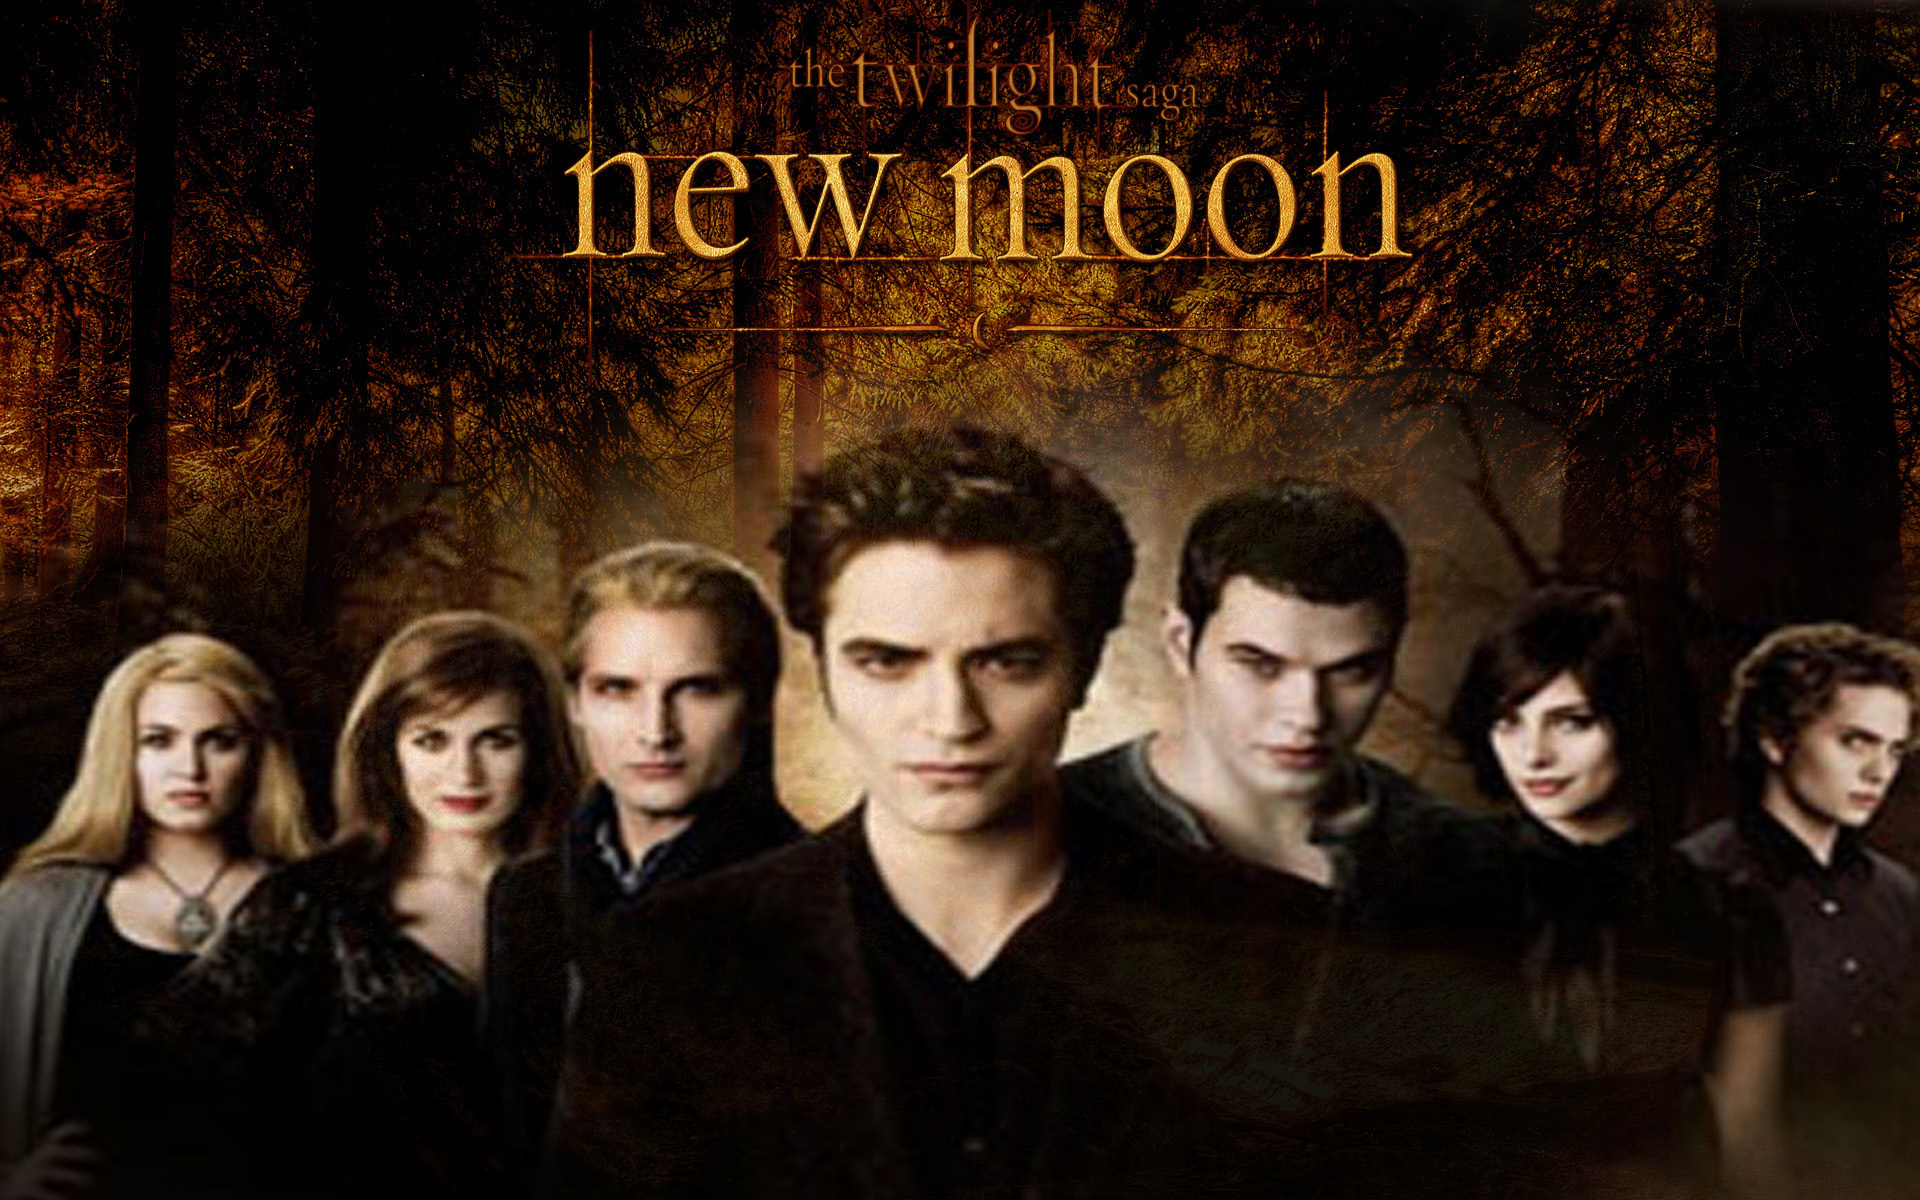 http://images2.fanpop.com/images/photos/6800000/New-Moon-the-Cullens-twilight-series-6800727-1920-1200.jpg